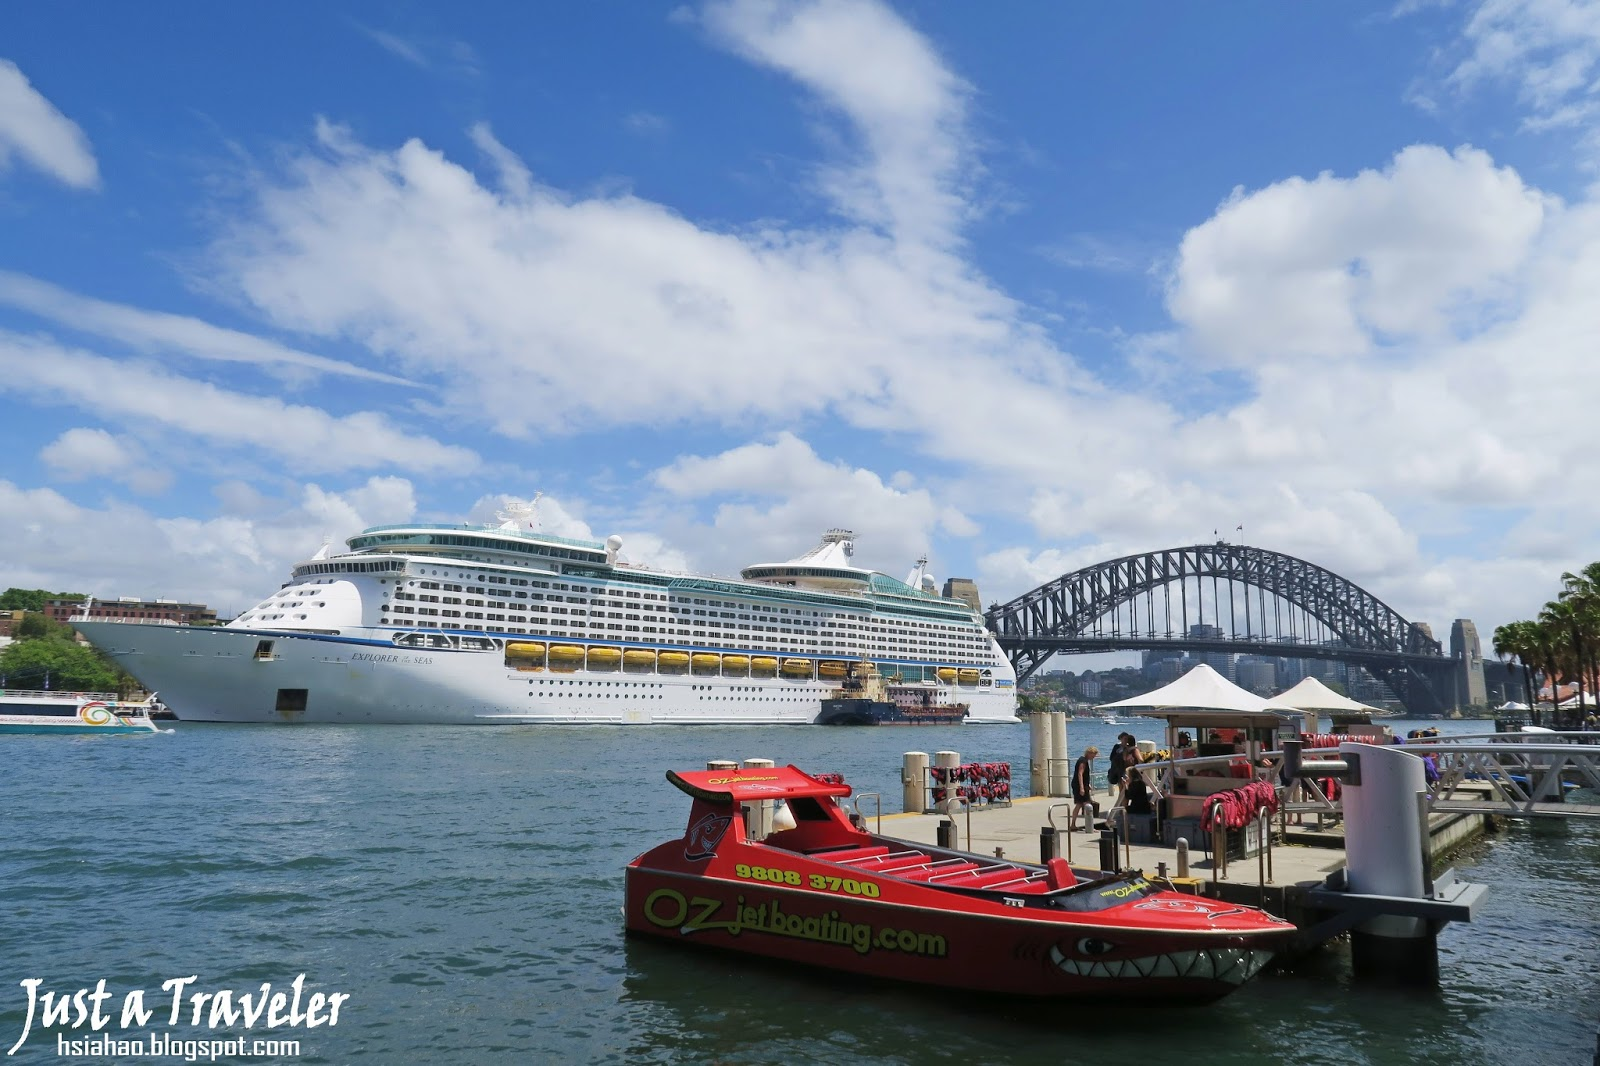 雪梨-景點-推薦-港灣大橋-Harbour-Bridge-旅遊-自由行-澳洲-Sydney-Tourist-Attraction-Travel-Australia